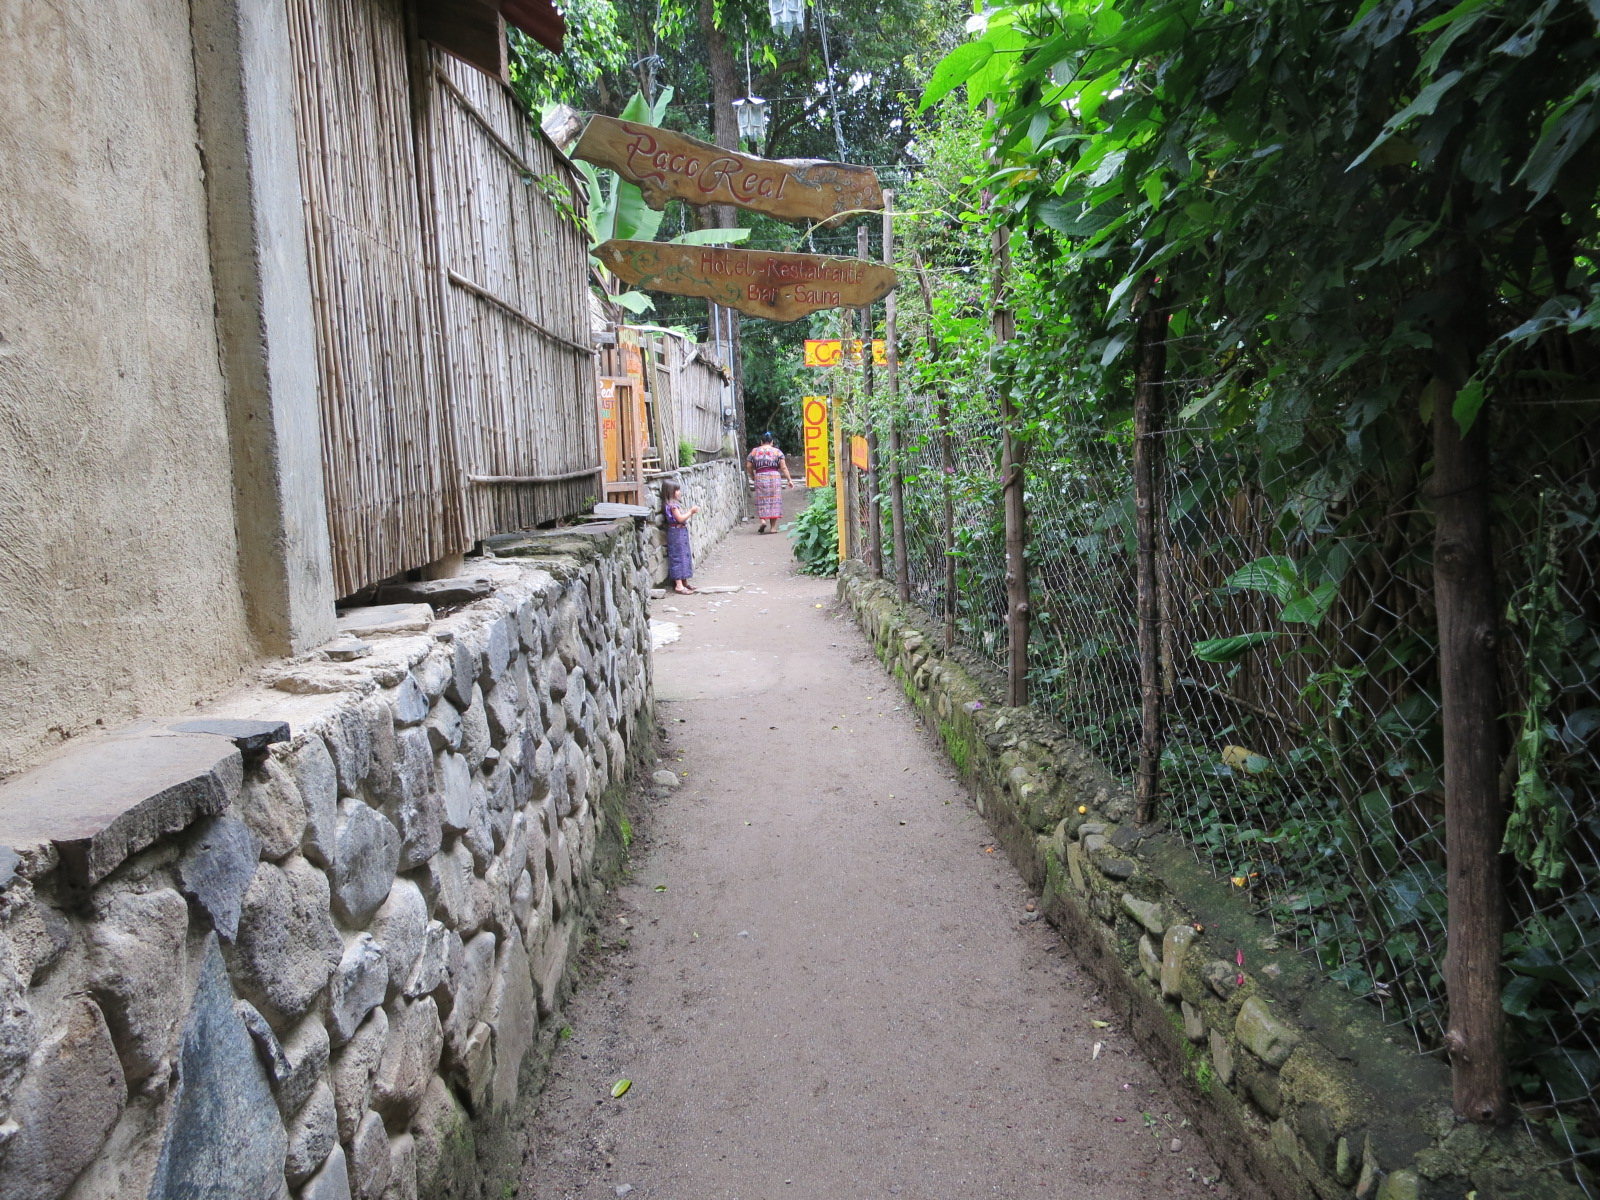 One of the small paths